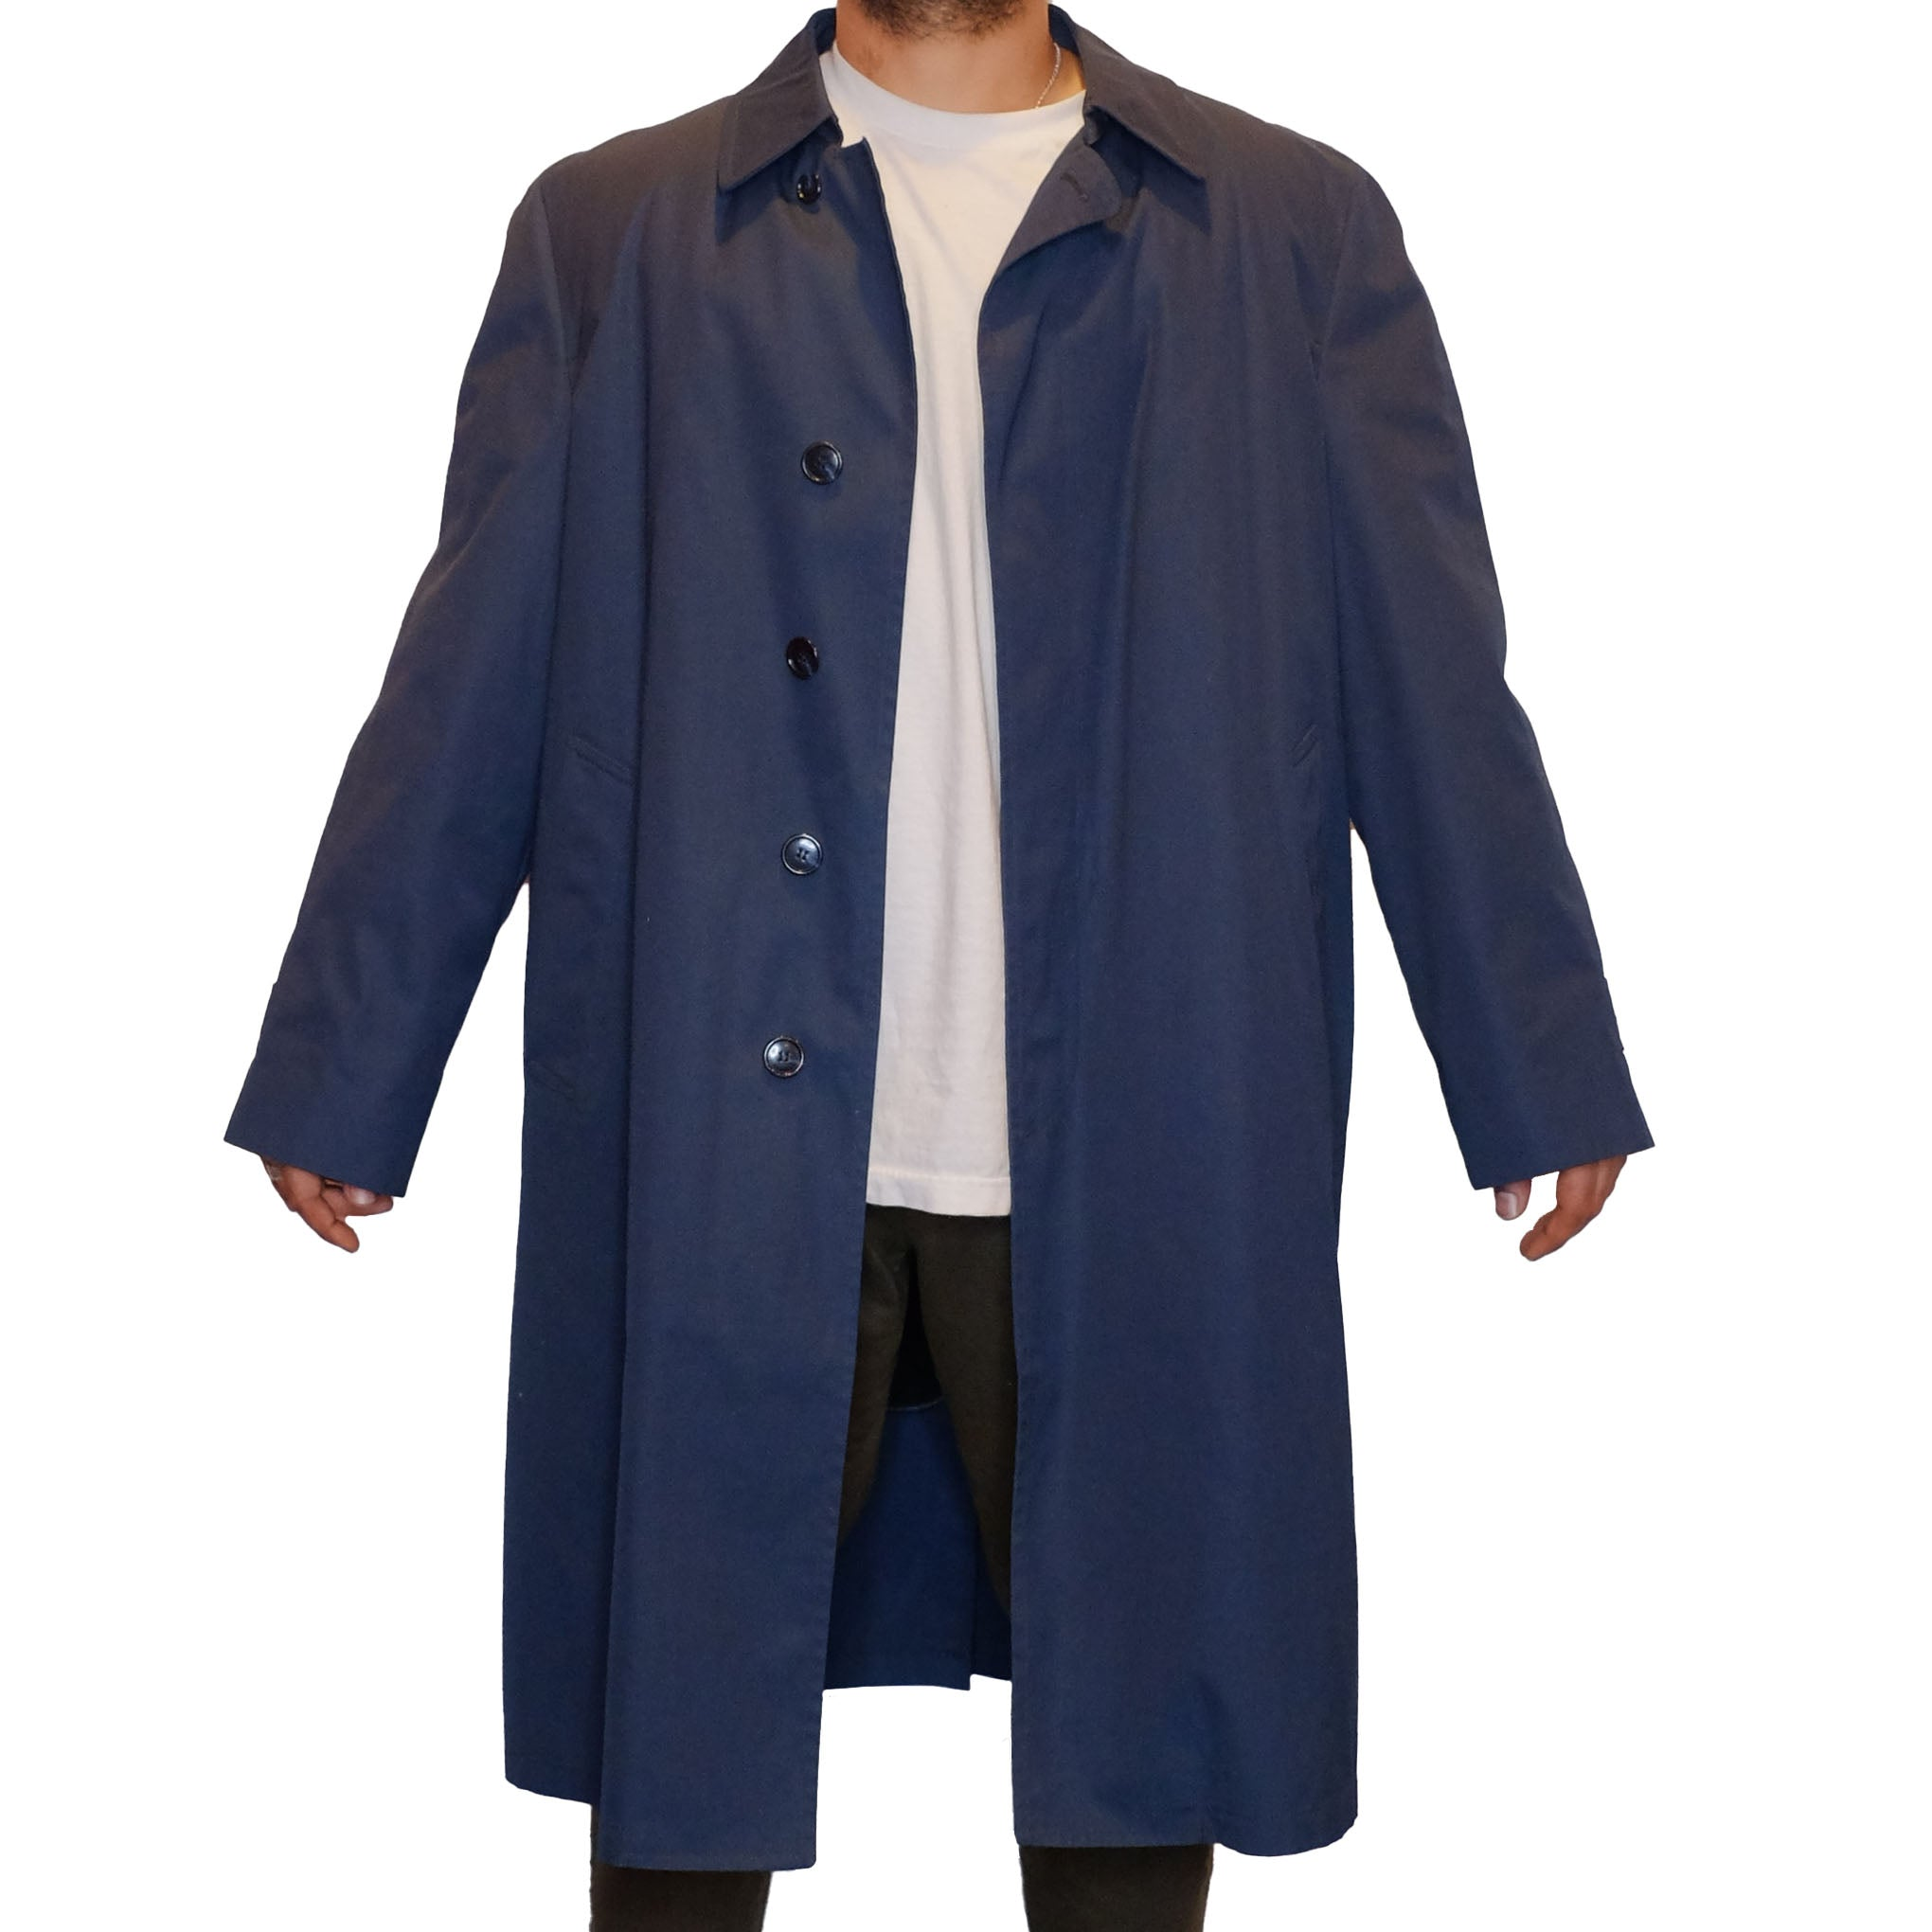 Dark Blue London Fog Coat